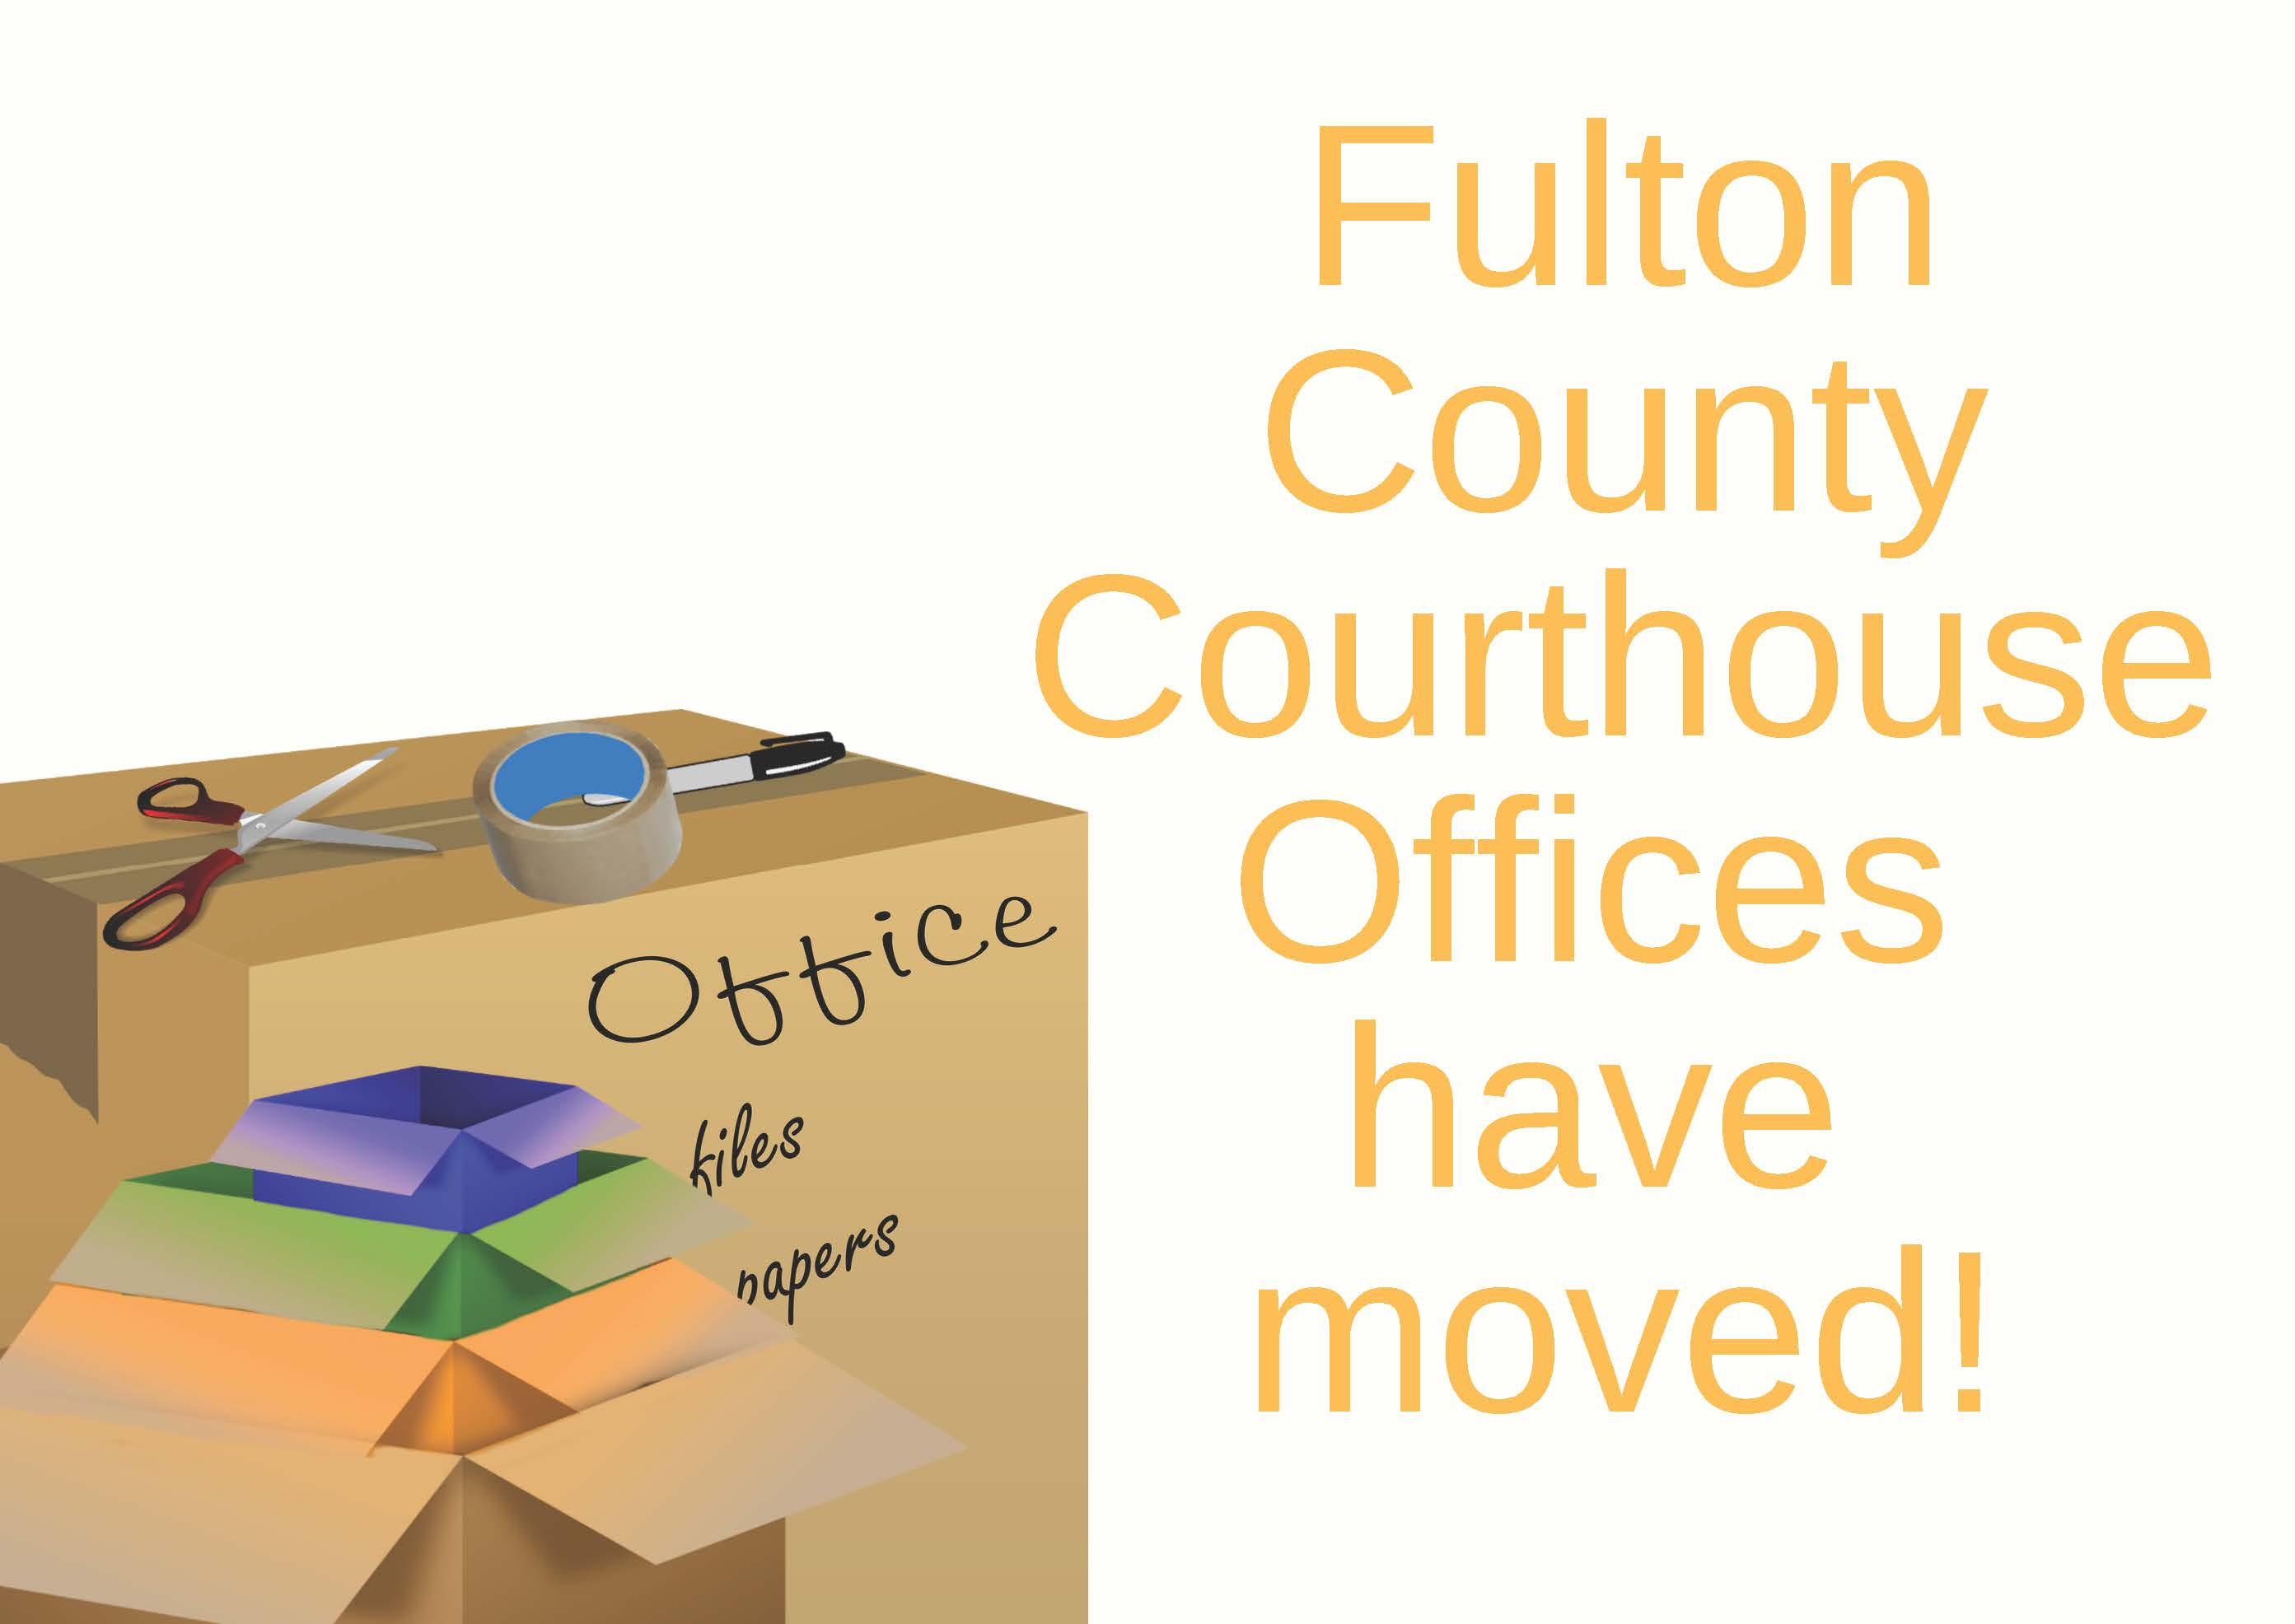 Fulton County Courthouse Offices have moved!